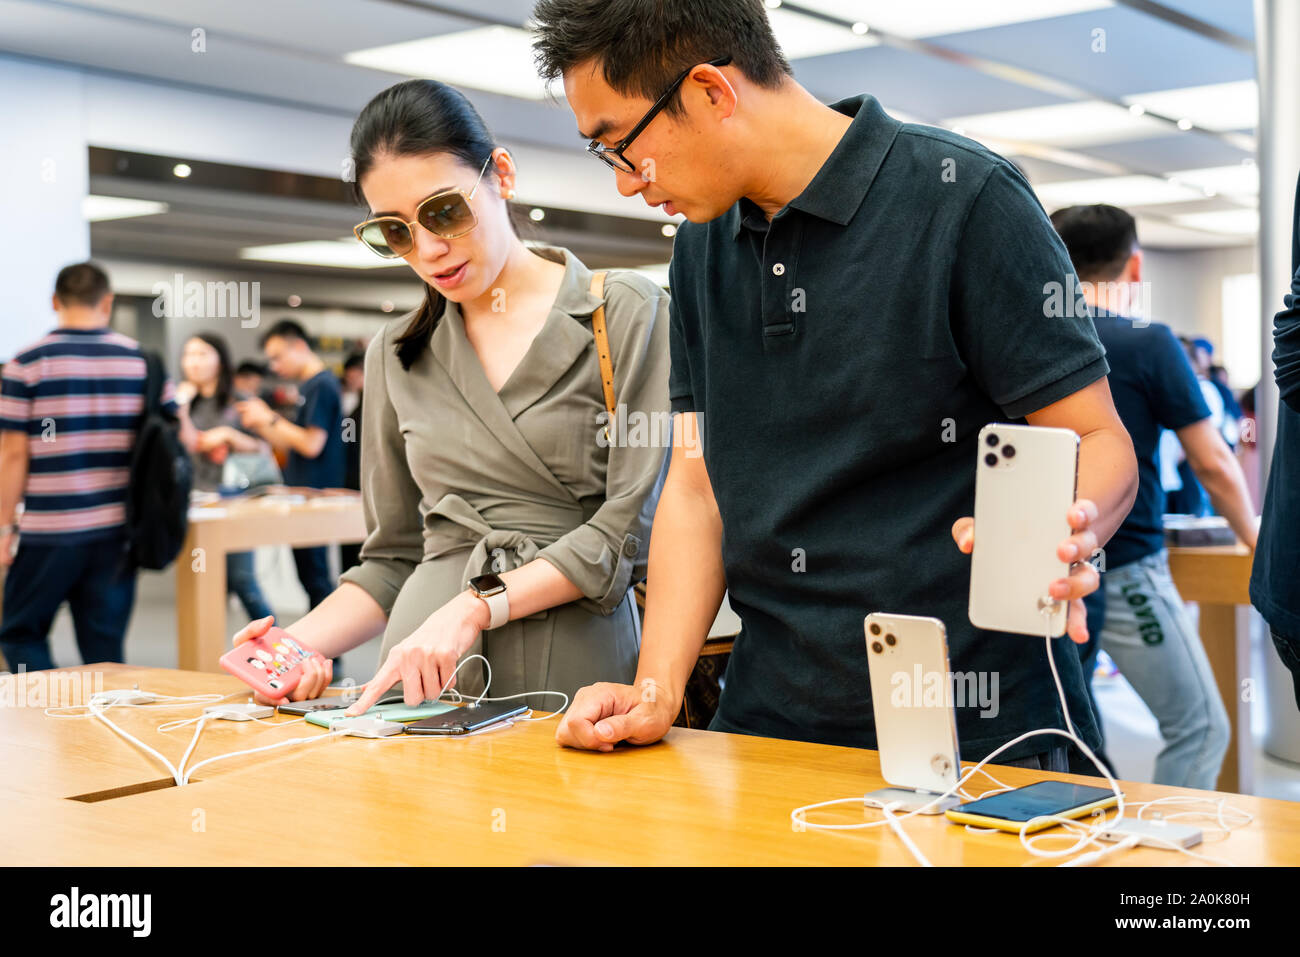 Customers look at Apple's new iPhone 11 series smartphones at an Apple retail store at the IFC Mall in Pudong New Area, Shanghai. Apple launched sales of its latest iPhone 11, iPhone 11 Pro and iPhone 11 Pro Max in China. Stock Photo